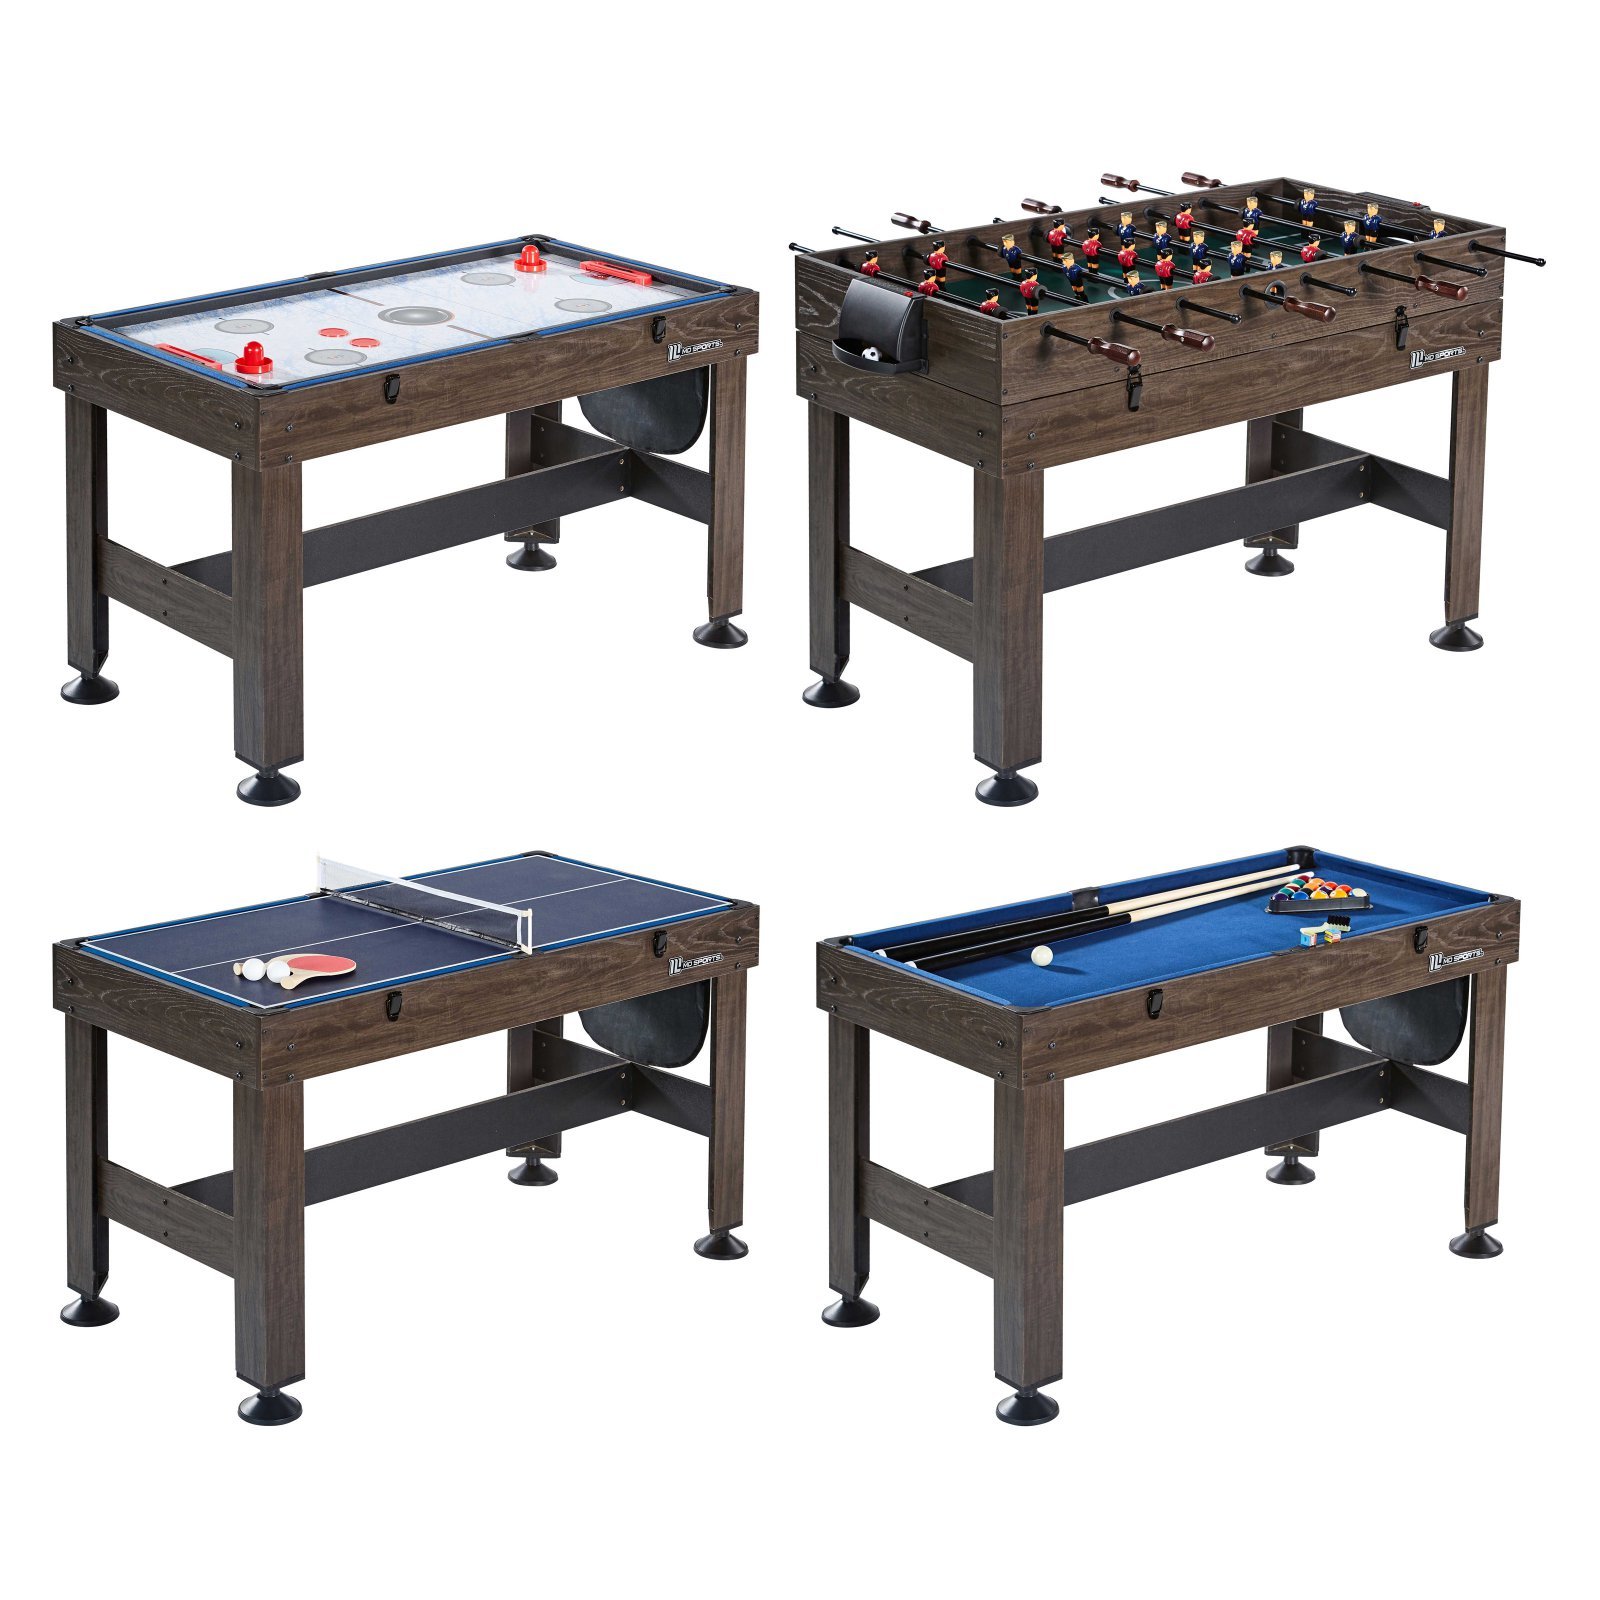 Md Sports 4 In 1 Combo Game Table Multi Game Table Table Games